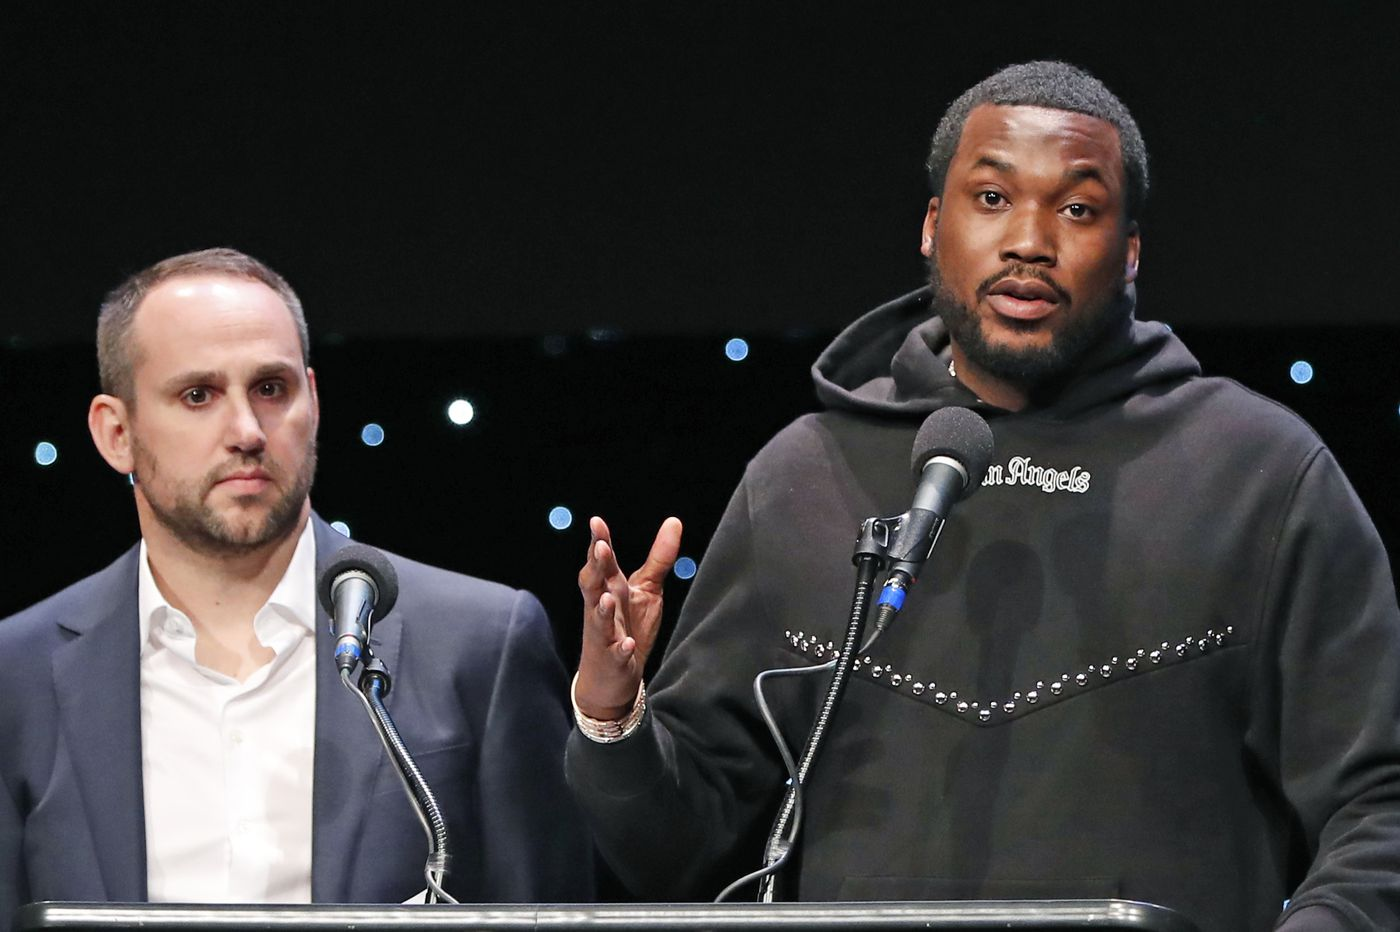 Sixers' Michael Rubin blasts judge in Meek Mill case for barring travel to playoff game